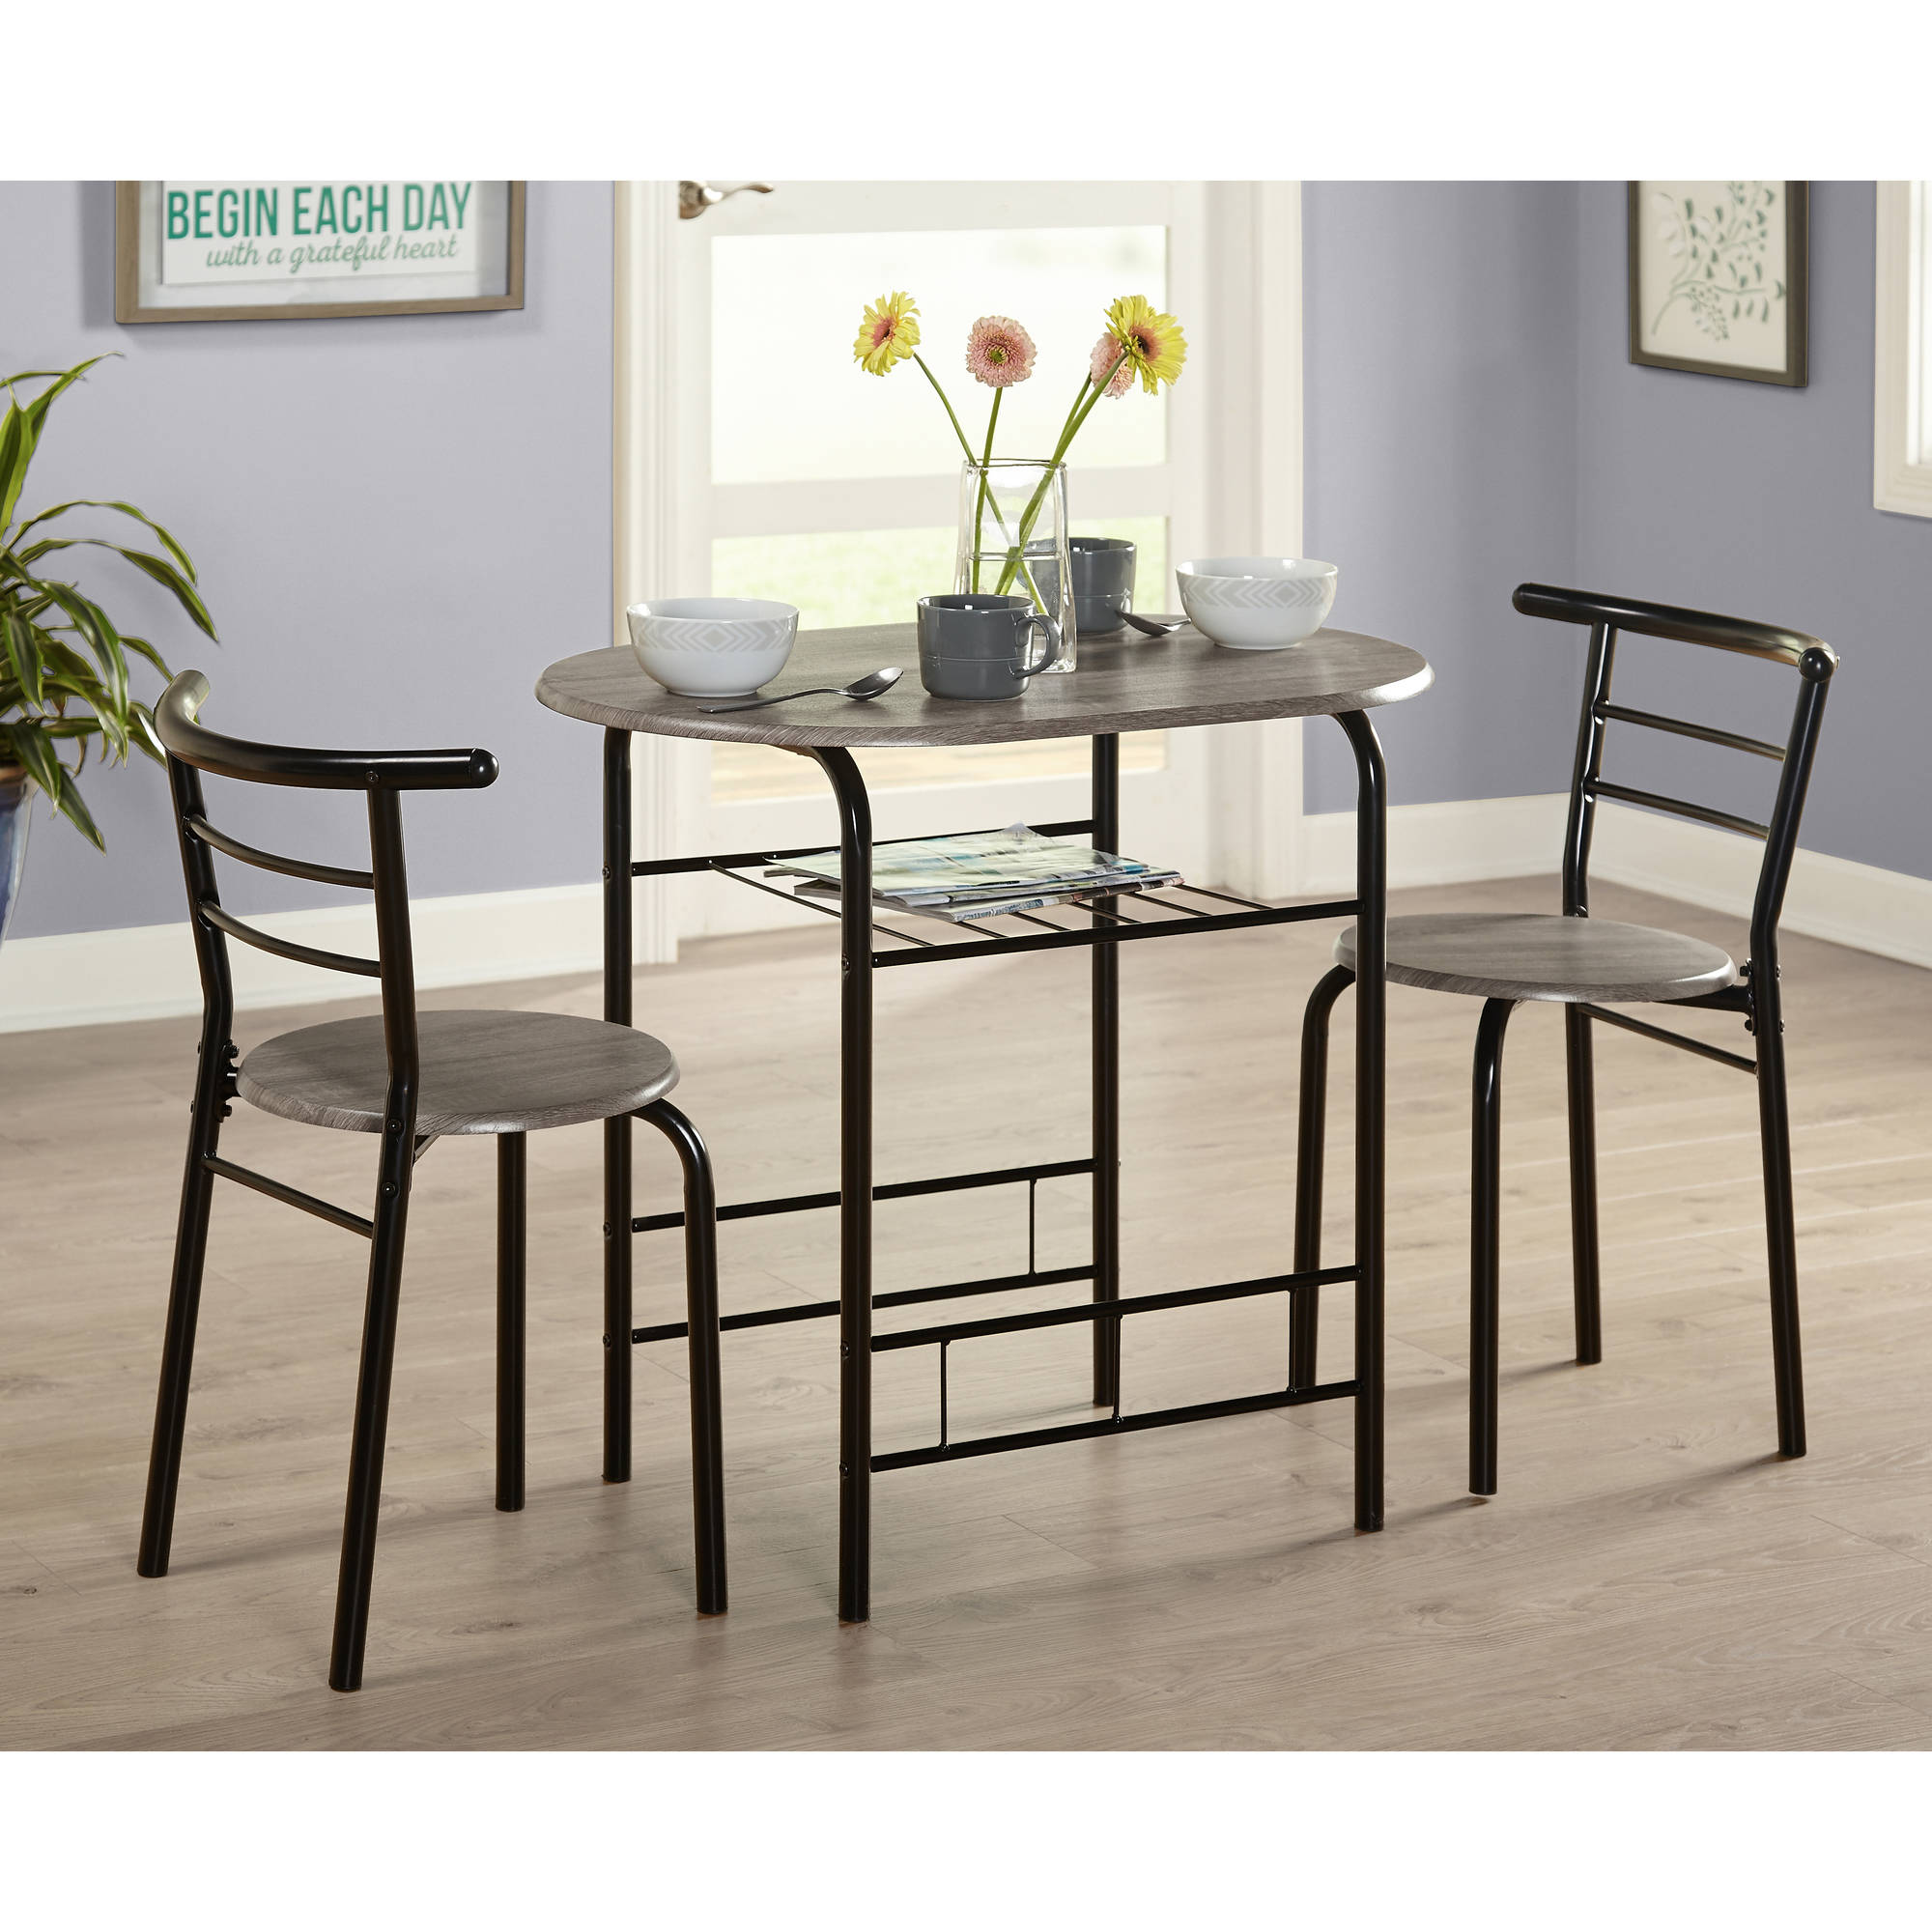 3 piece kitchen set kitchenette tms 3piece bistro dining set walmartcom